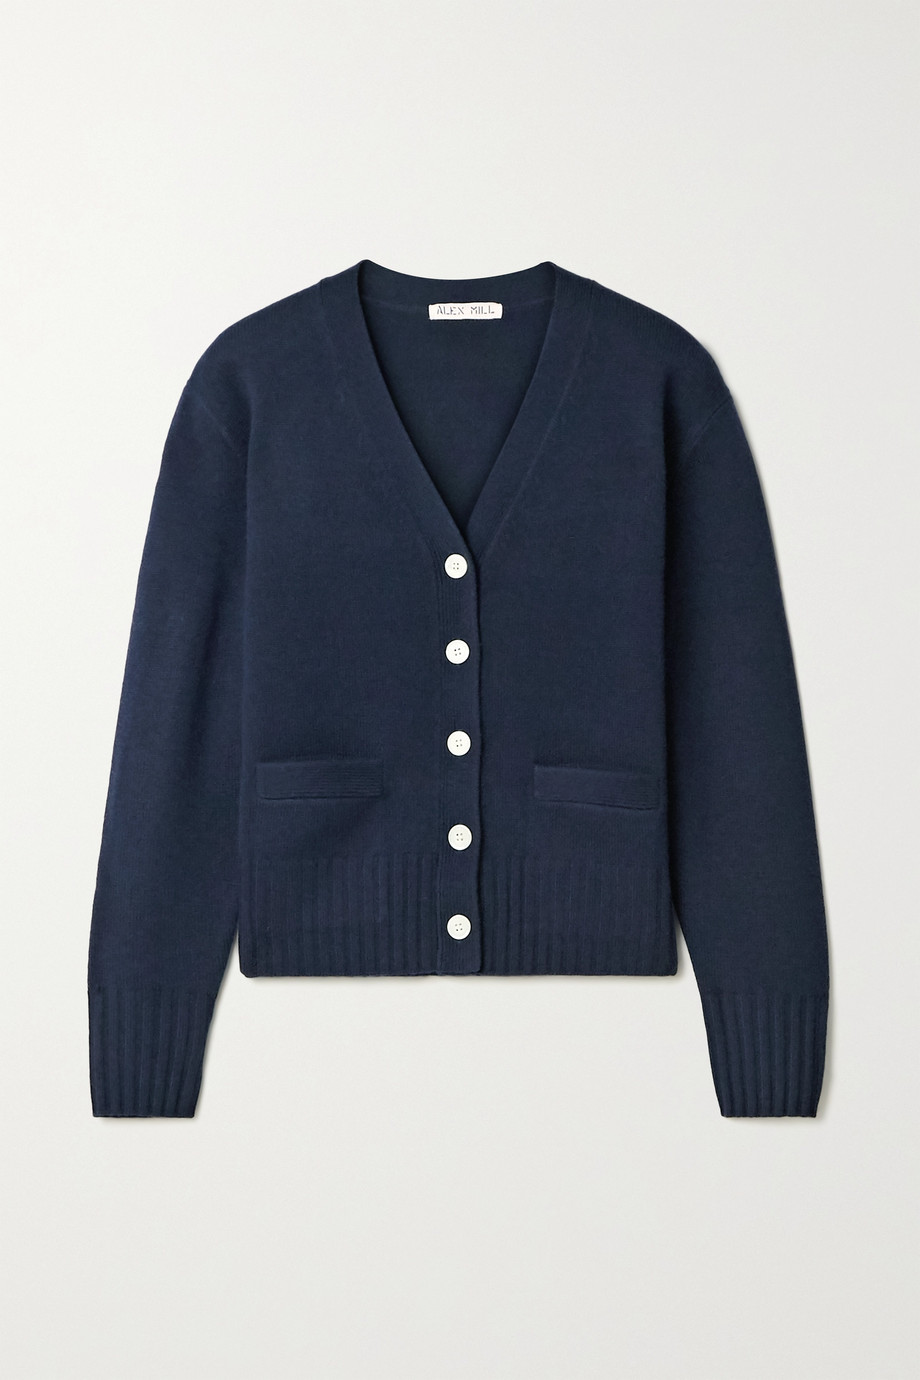 Alex Mill Bleeker merino wool cardigan